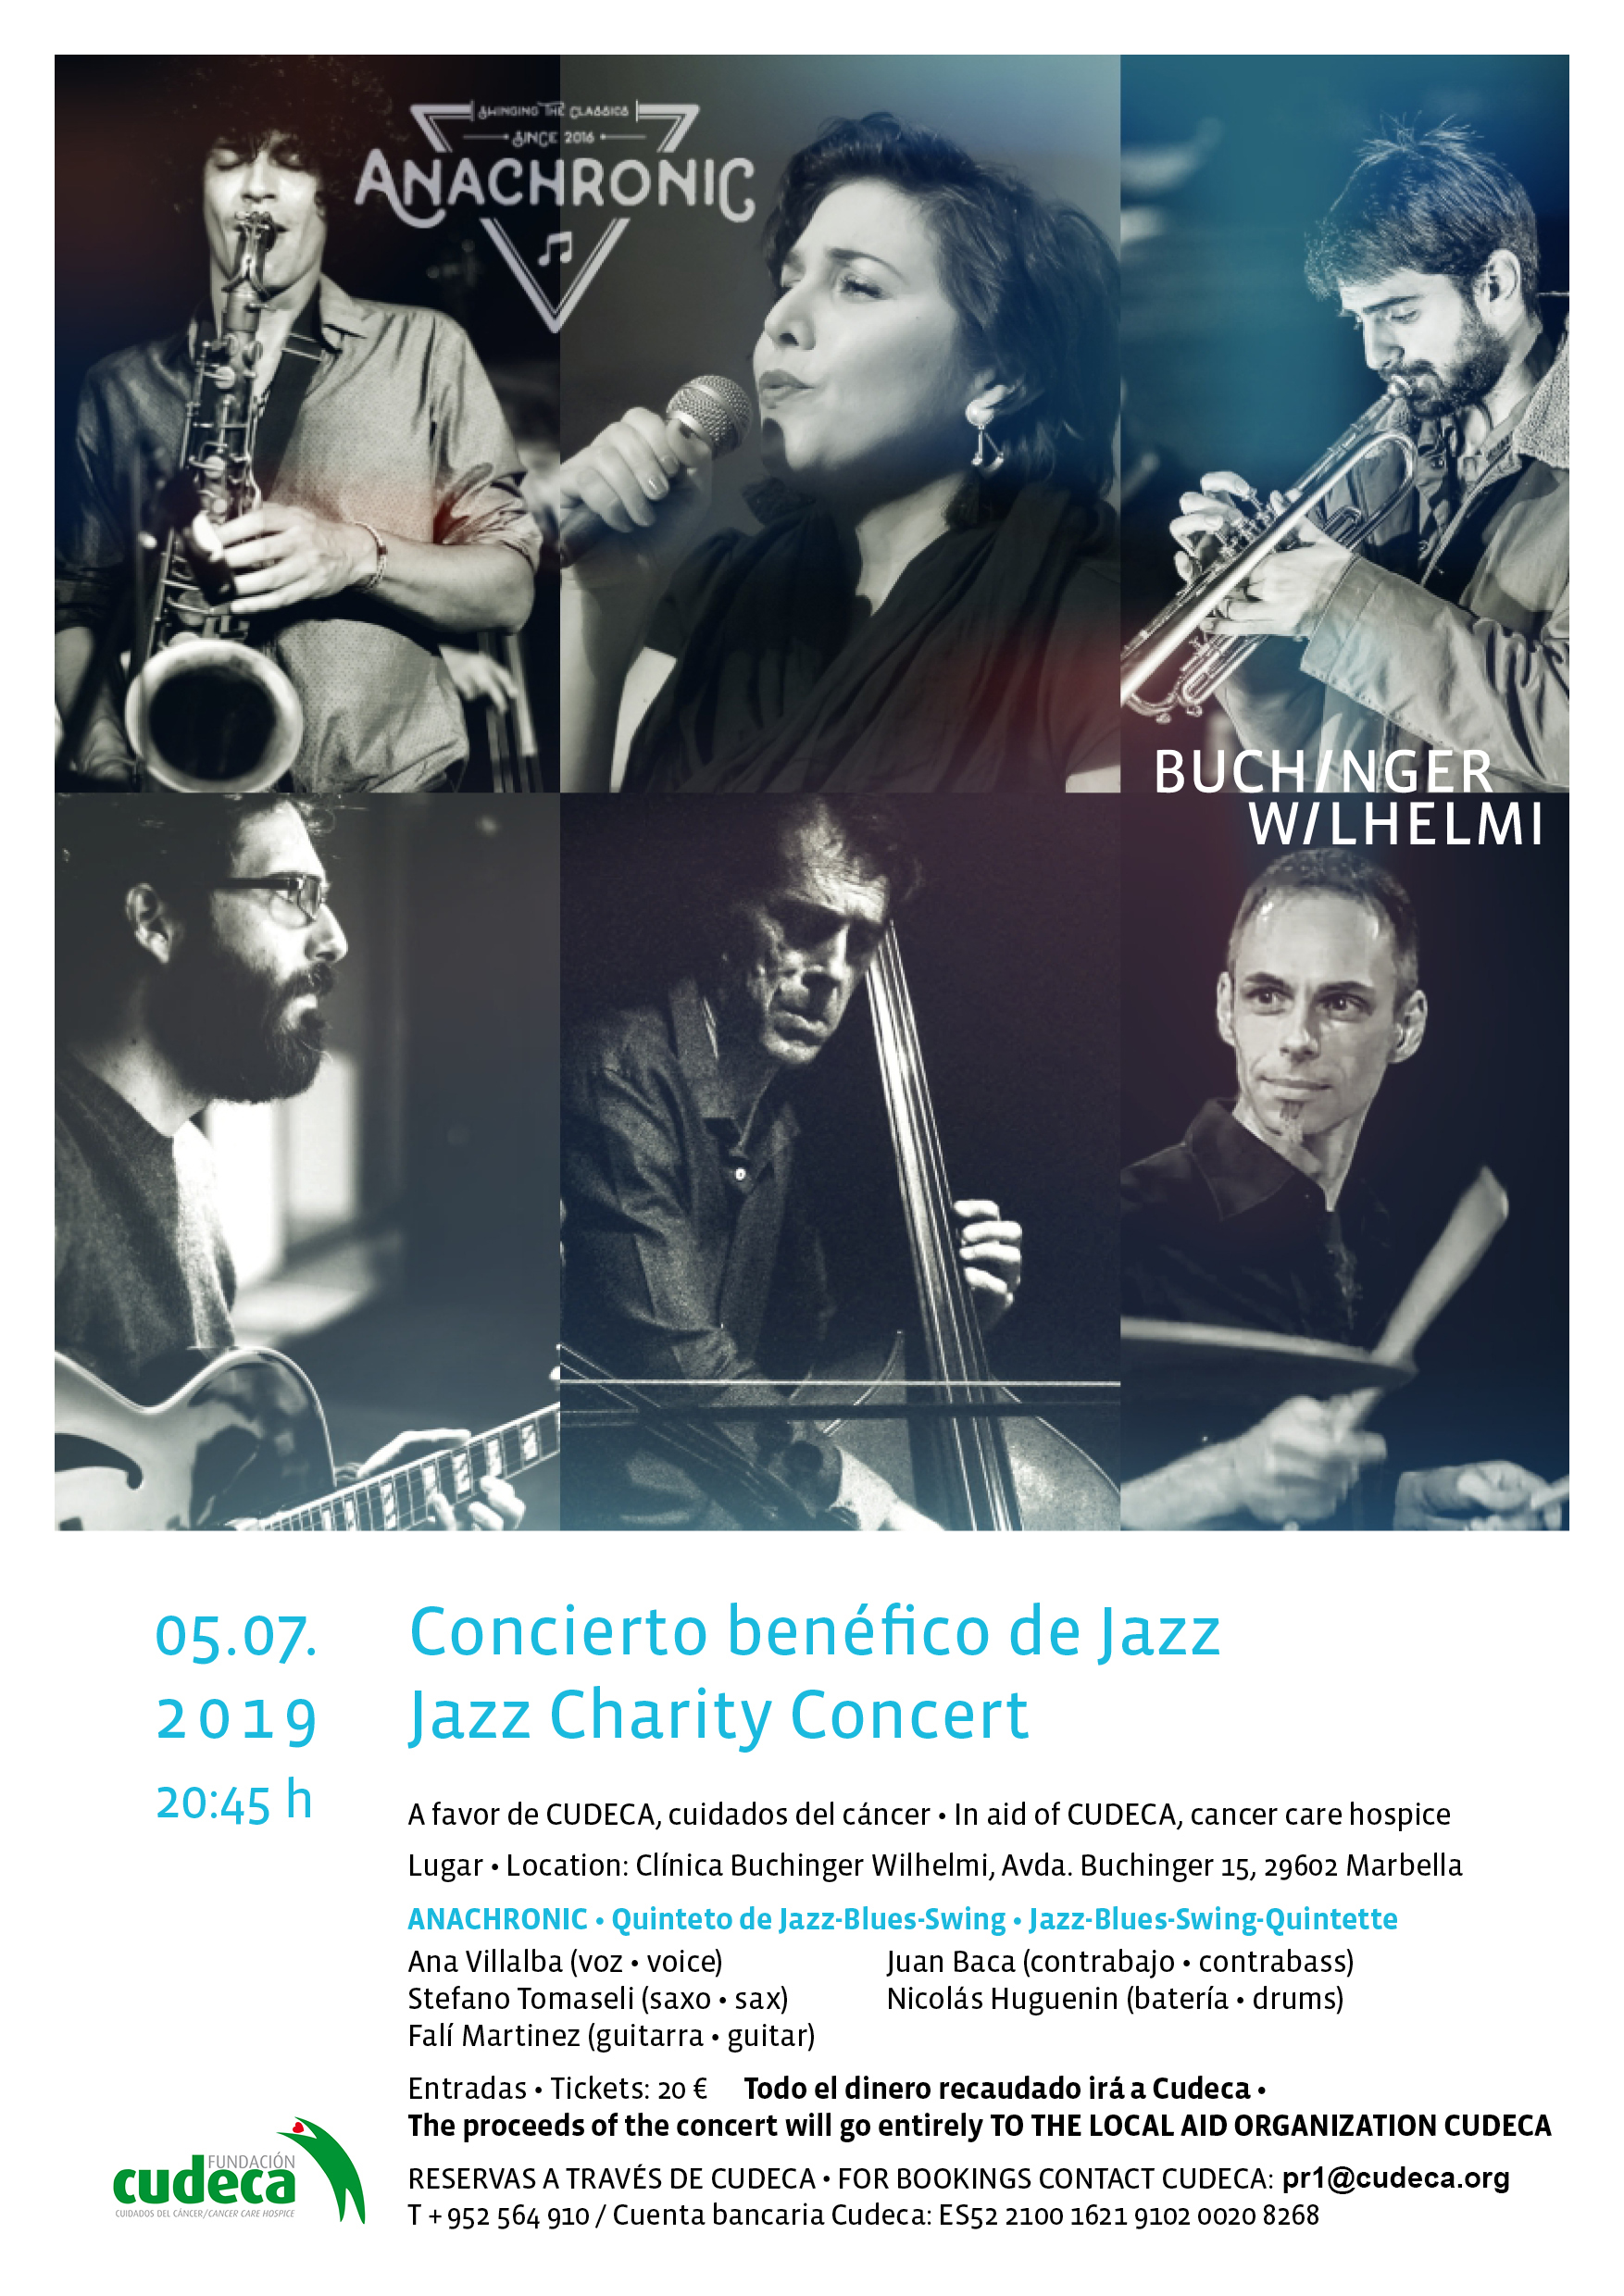 Charity Jazz Concert for CUDECA  at the Buchinger Wilhelmil Clinic Gardens